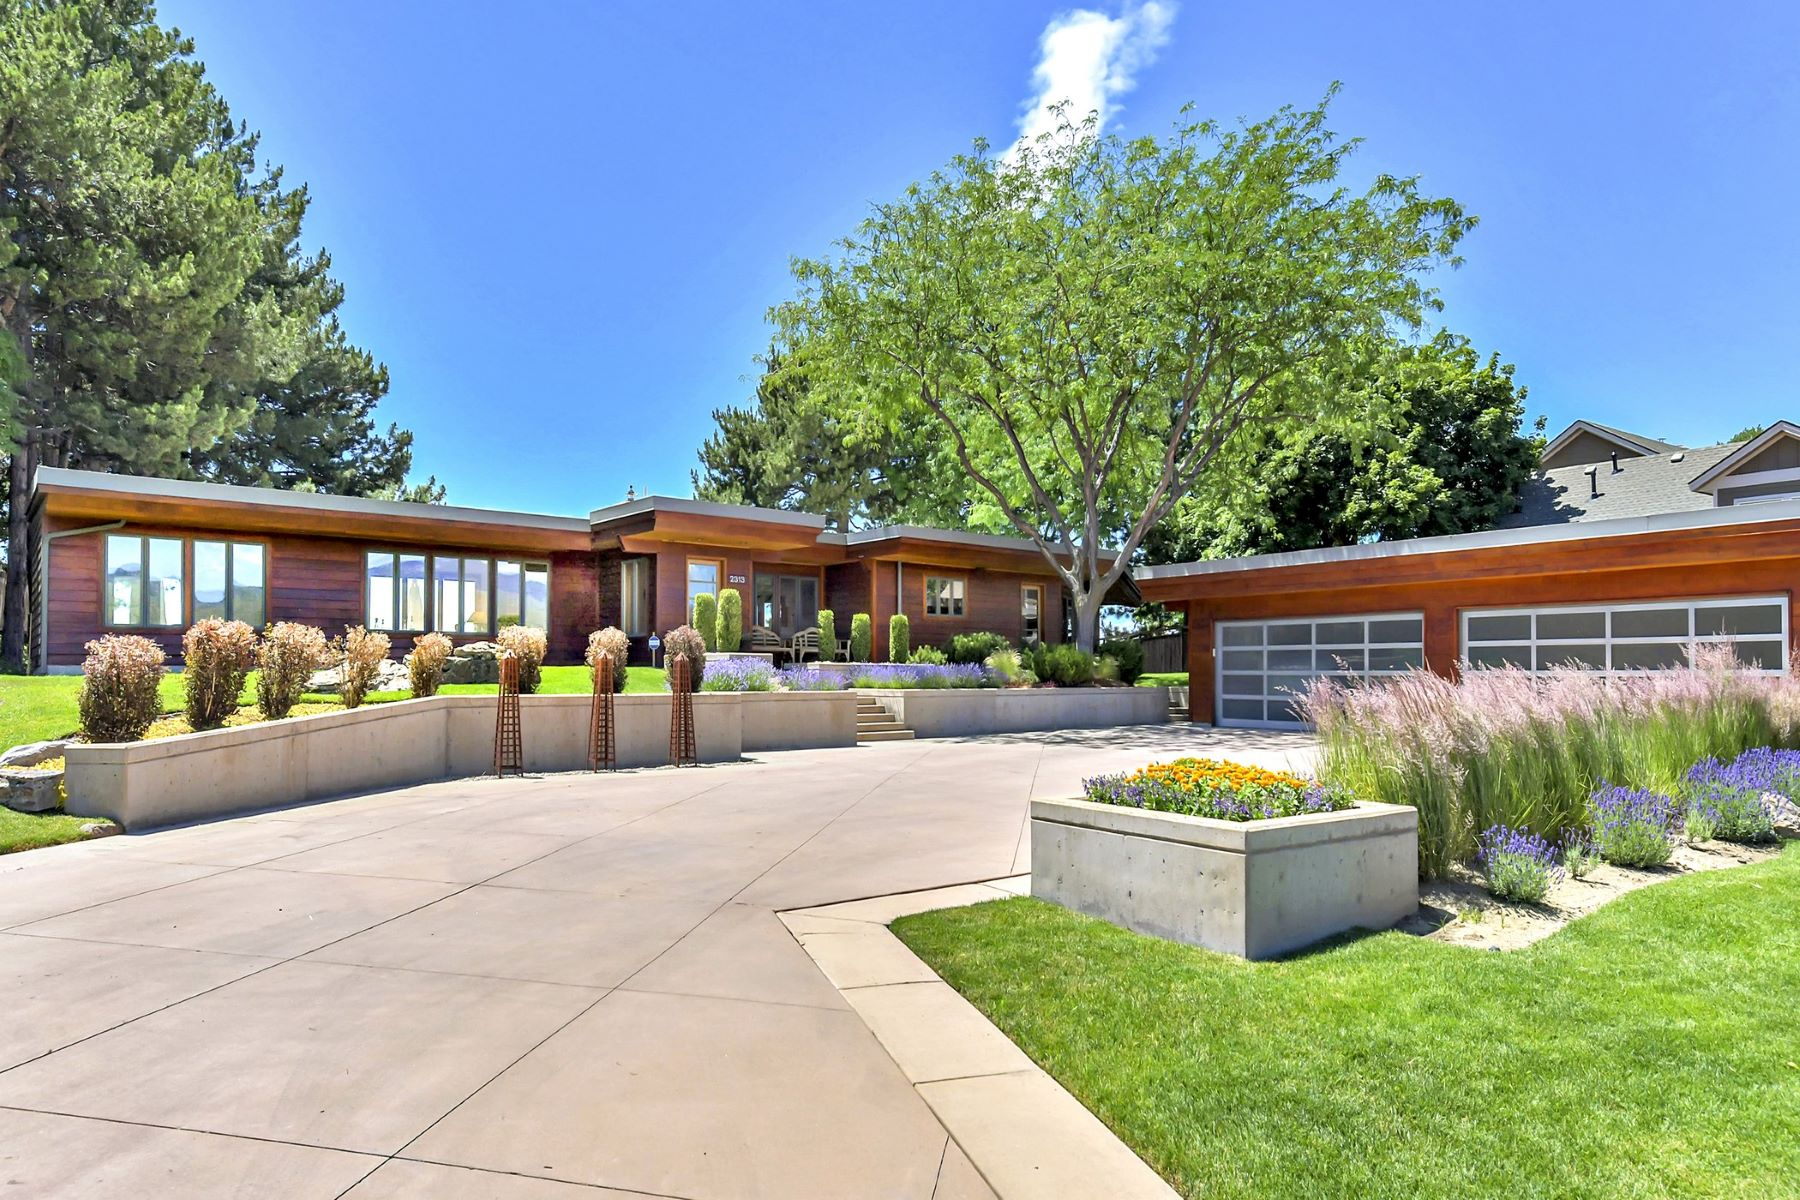 Single Family Homes for Sale at 2313 Claremont Drive, Boise 2313 N Claremont Dr Boise, Idaho 83702 United States